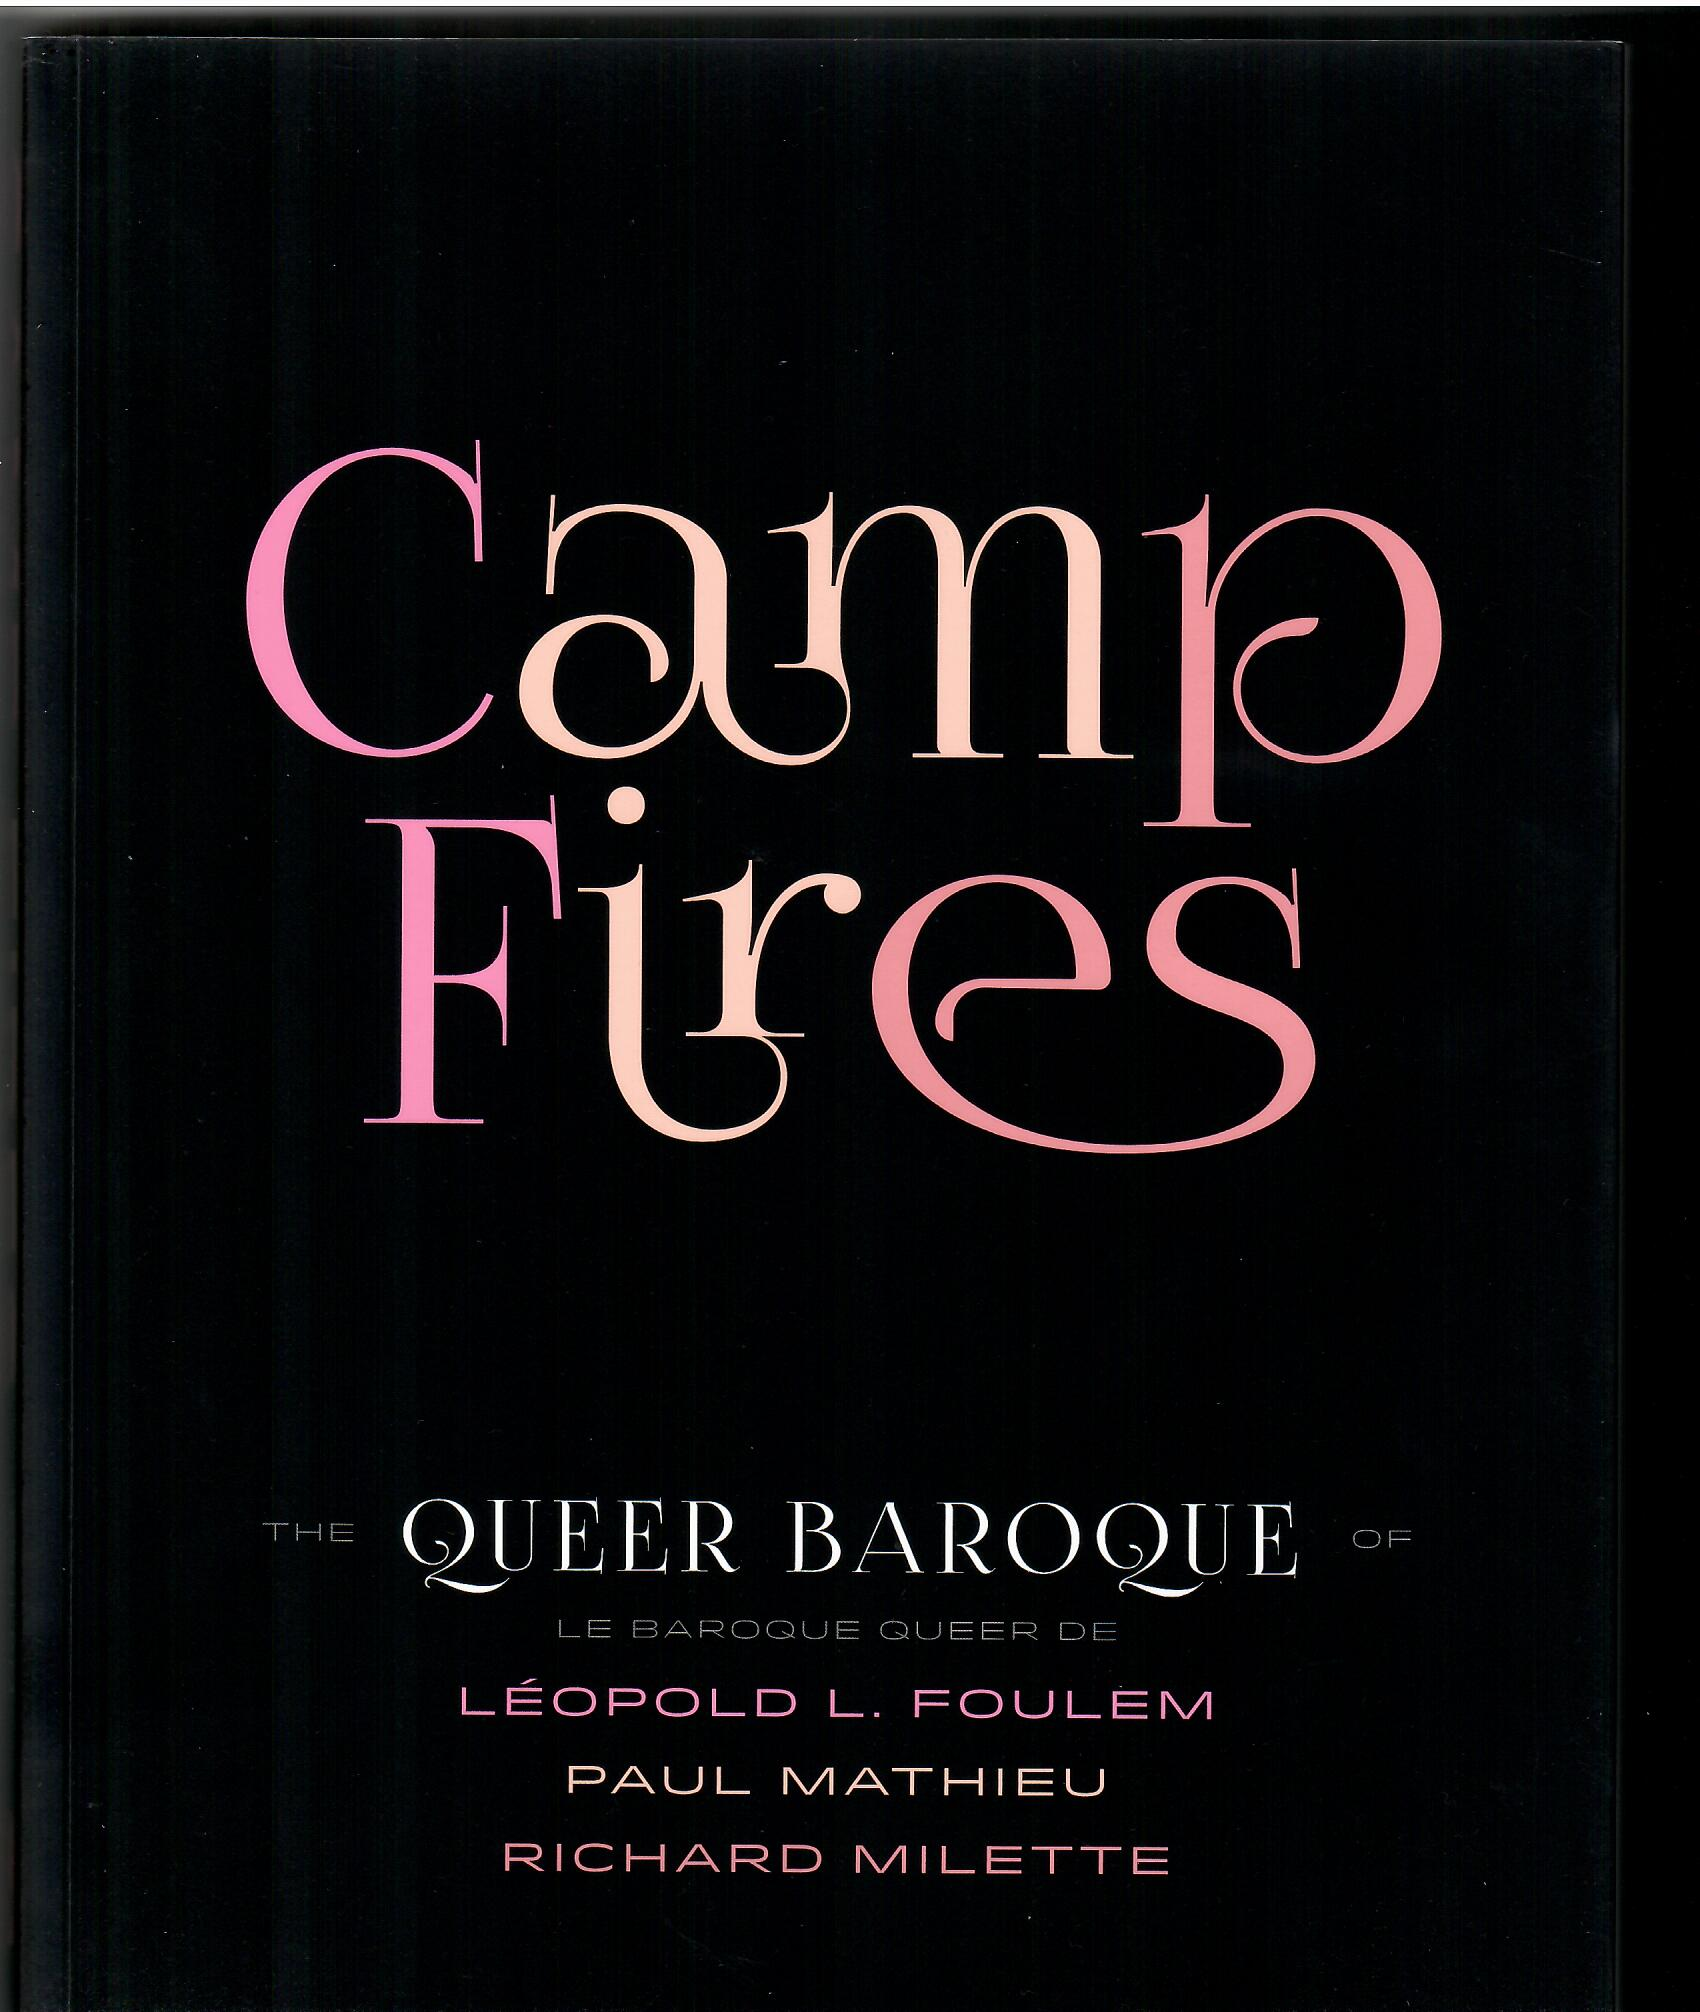 Image for The Queer Baroque of Leopold Foulem, Paul Mathieu, Richard Milette; CAMP FIRES